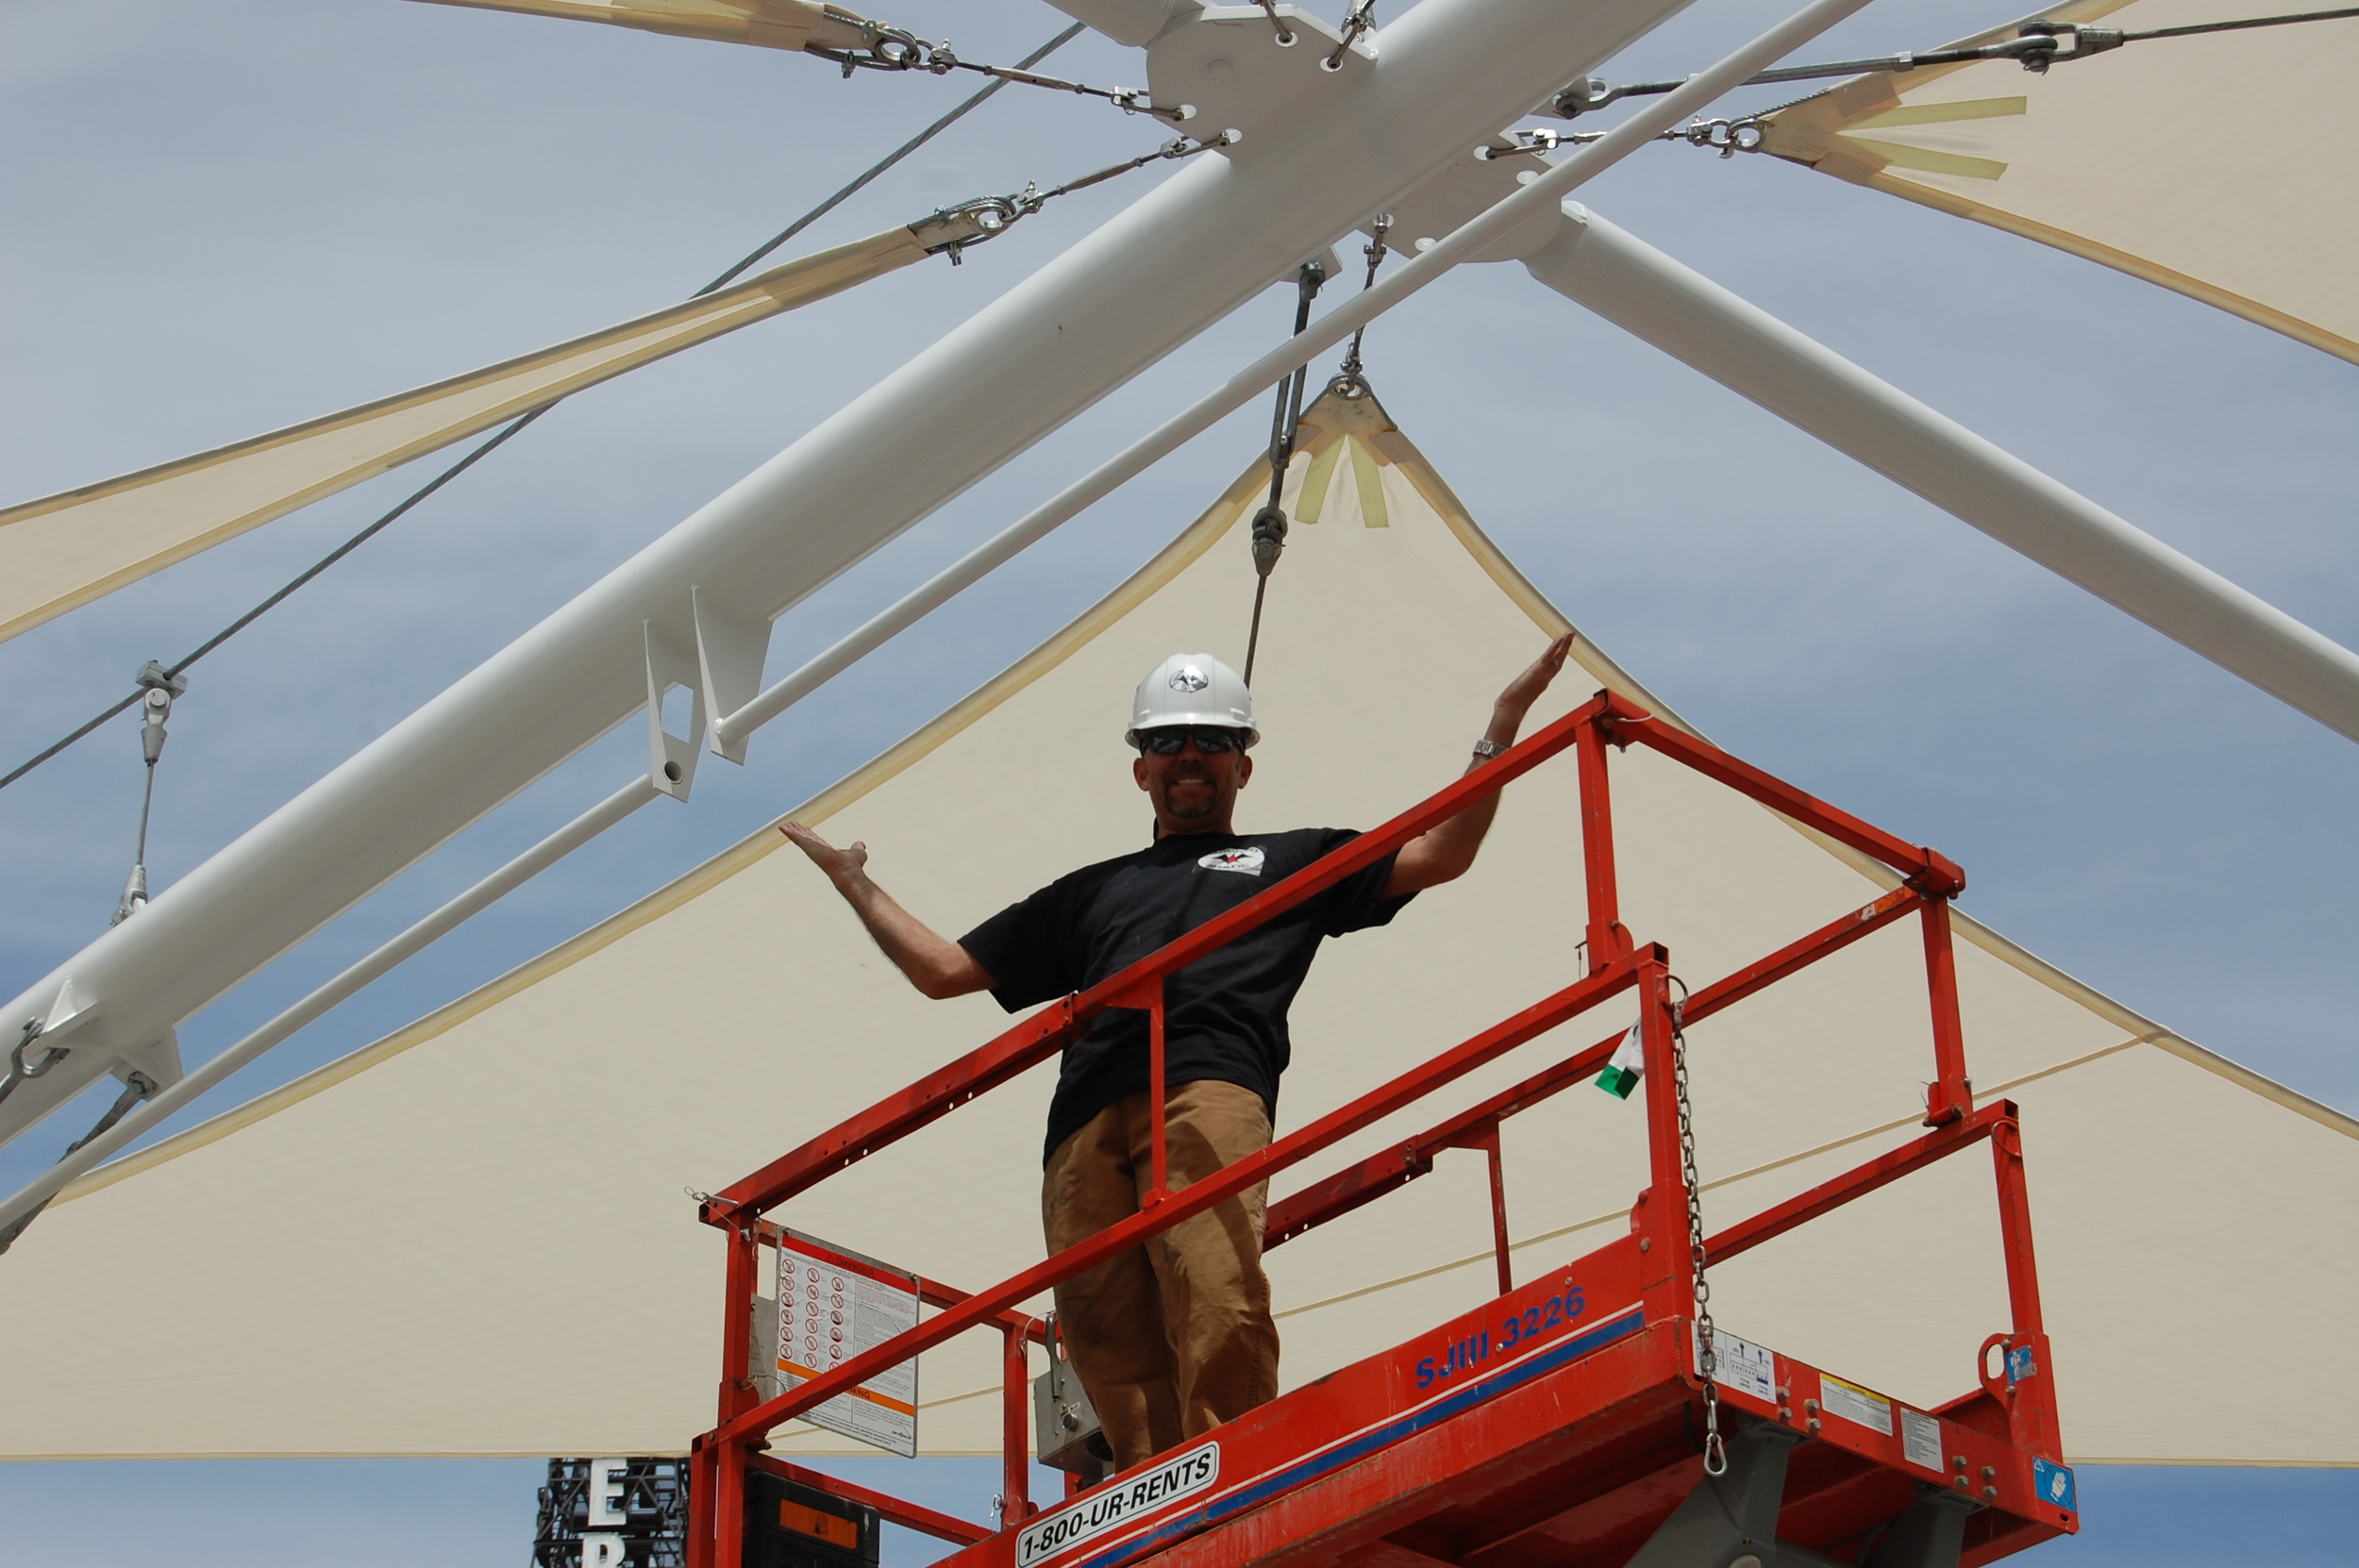 Tres installing the sails at the Gallivan Center